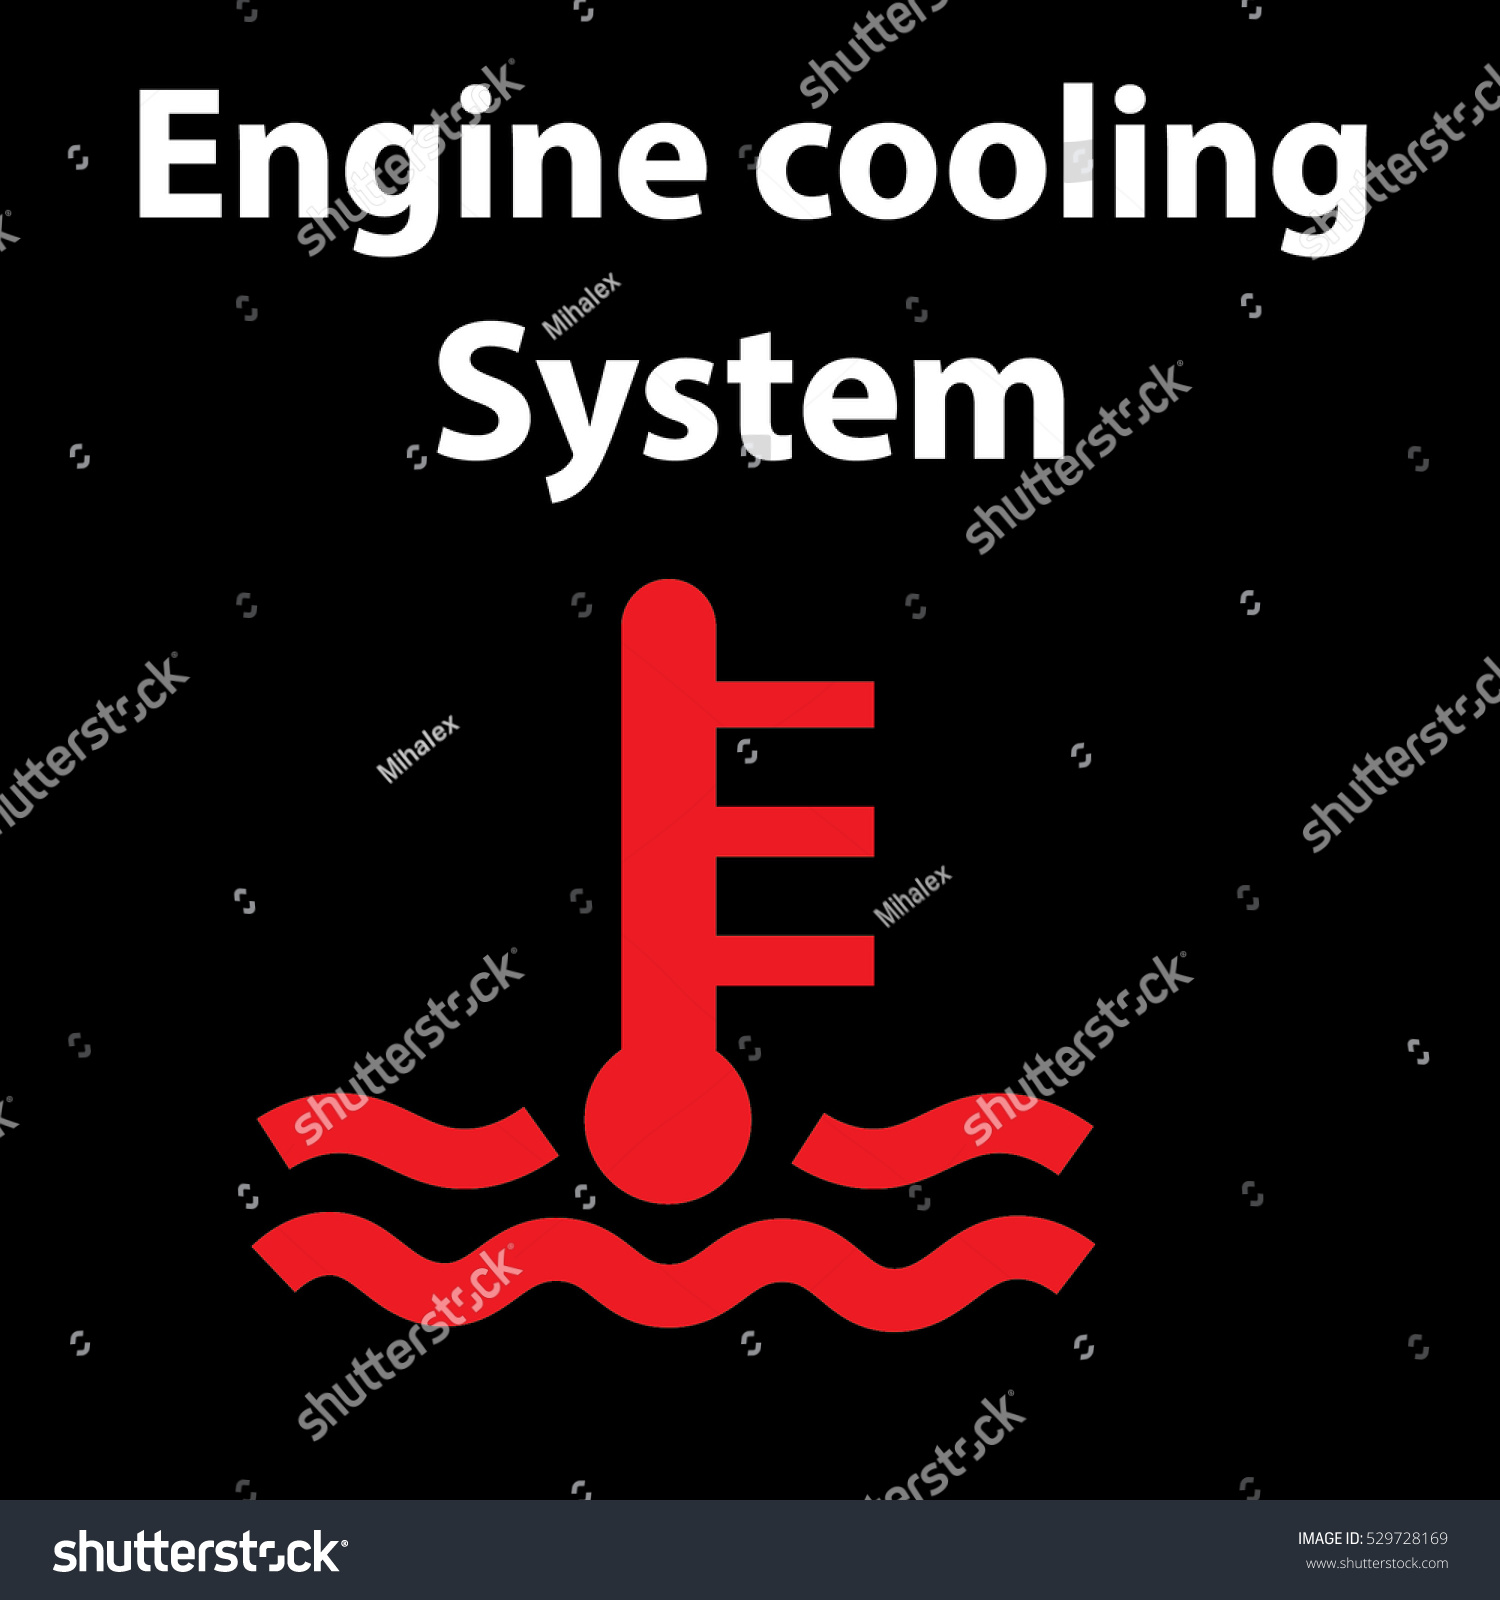 Kuhler liquid engine cooling system icon stock vector 529728169 kuhler liquid engine cooling system icon dashboard warning signs instrument cluster car hazard biocorpaavc